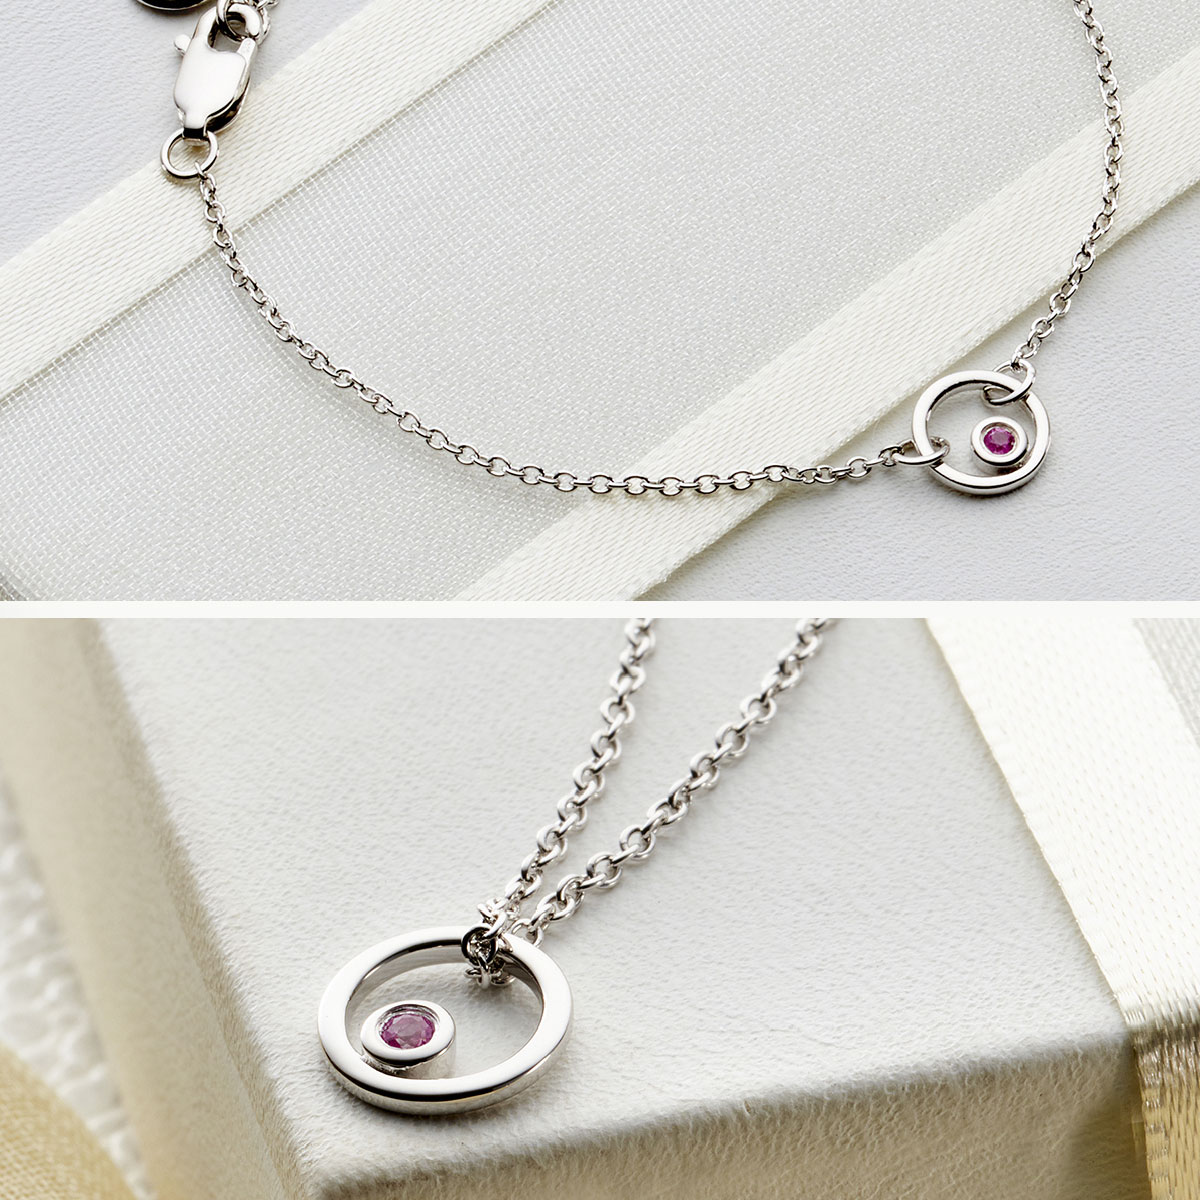 Pink Sapphire necklace and bracelet